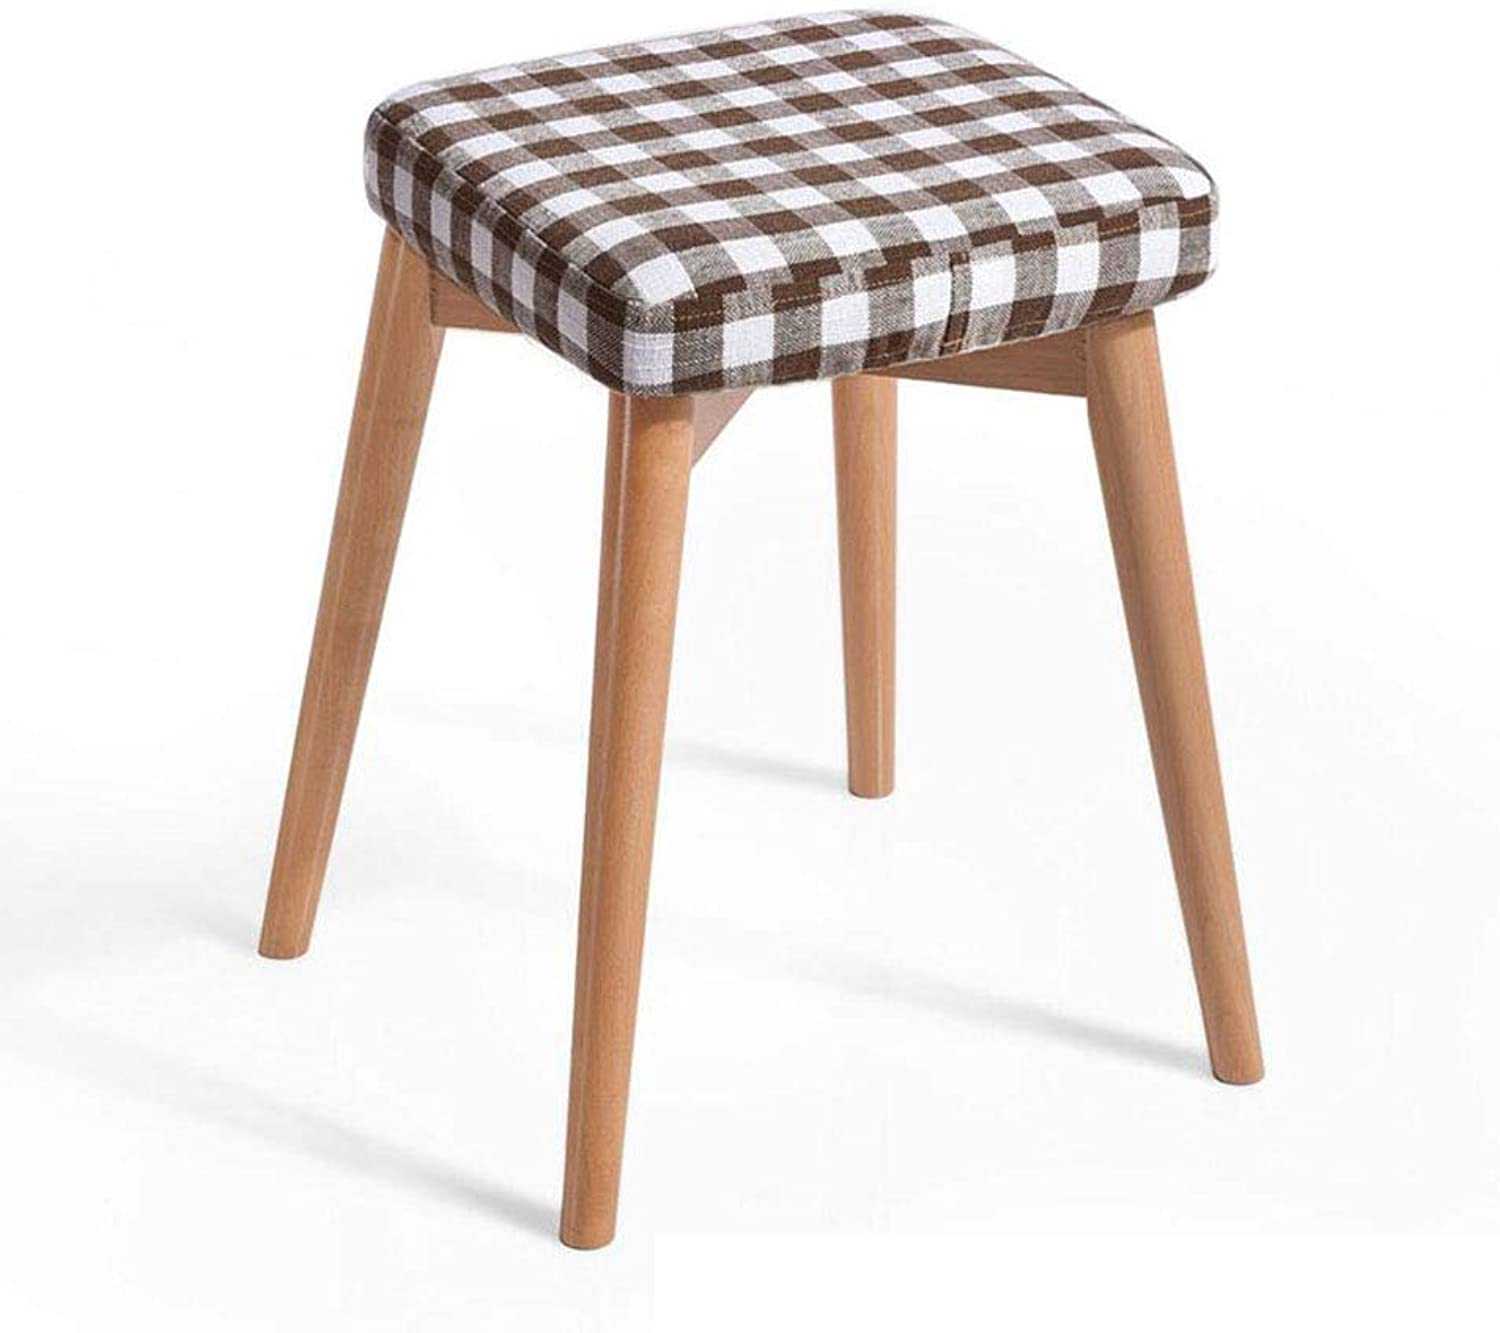 XUERUI Furniture Stools Chair Footstool Upholstered Modern Big Wood Seating Foot Stool 4 Legs and Linen Cover Strong Stability (color   T6)